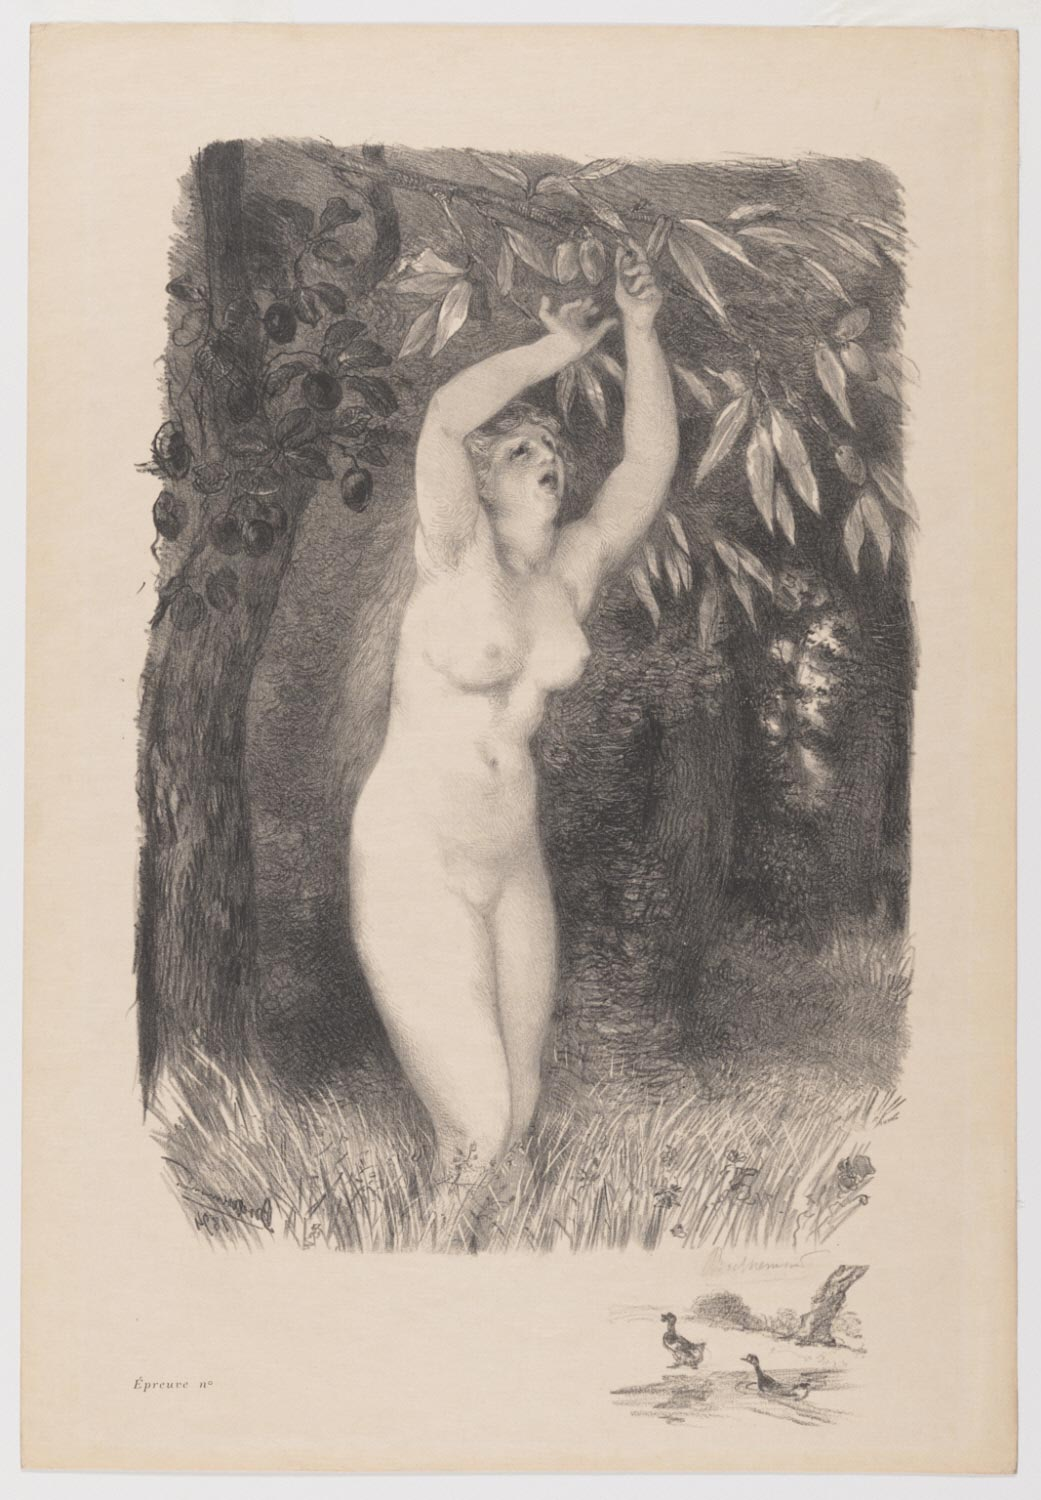 Le Verger (The Orchard)